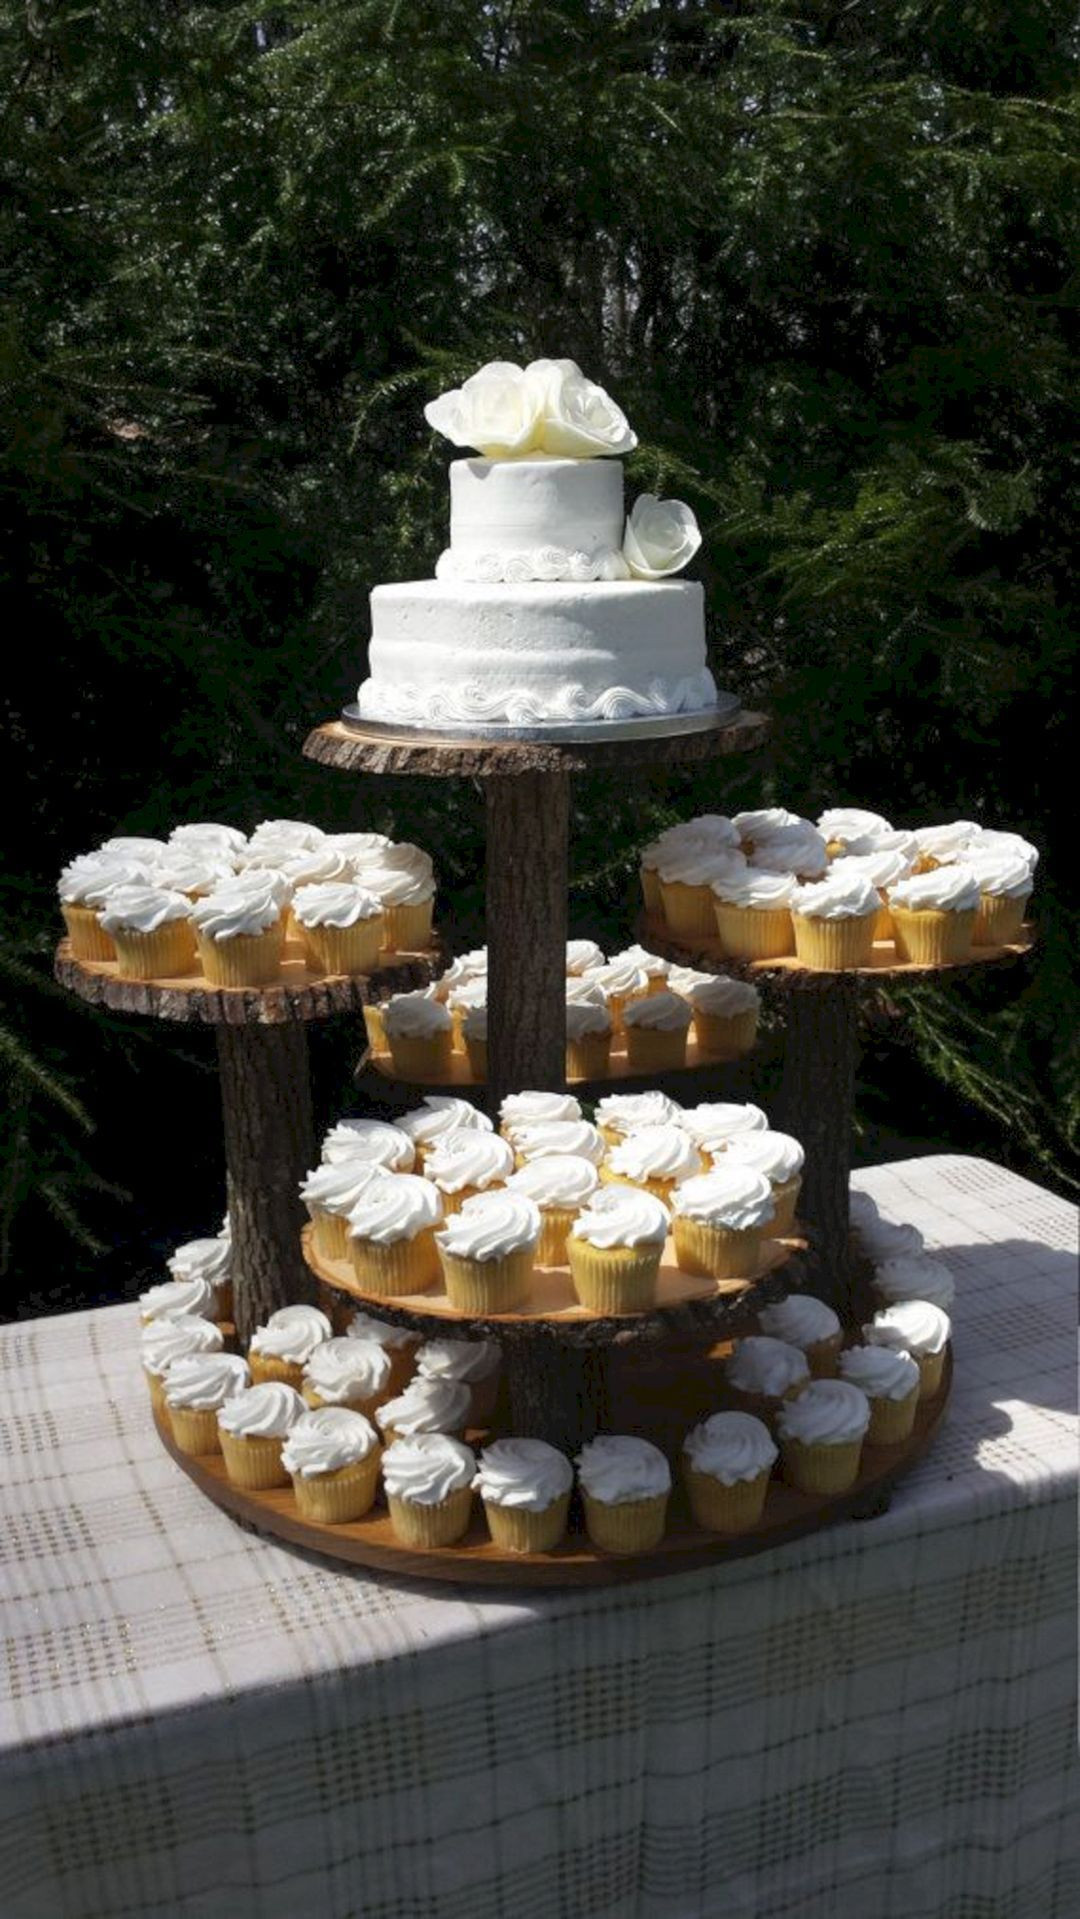 Wedding Cake Stands For Cupcakes  Rustic Wedding Cake Cupcake Stand Design – OOSILE